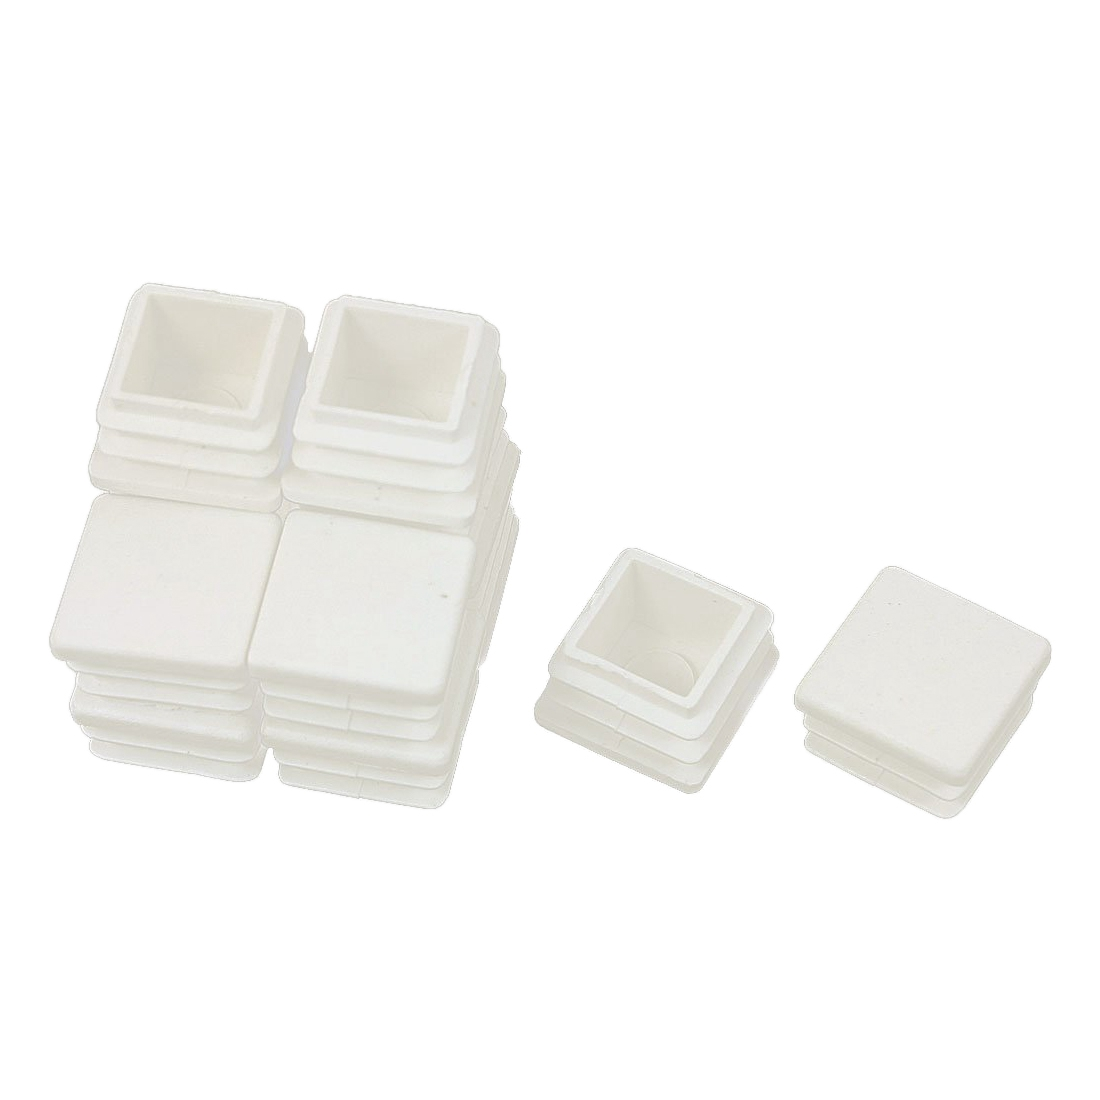 20 mm x 20 mm plastic white end caps blanking version of the caps spare caps accessories for professional square tube inserts цена